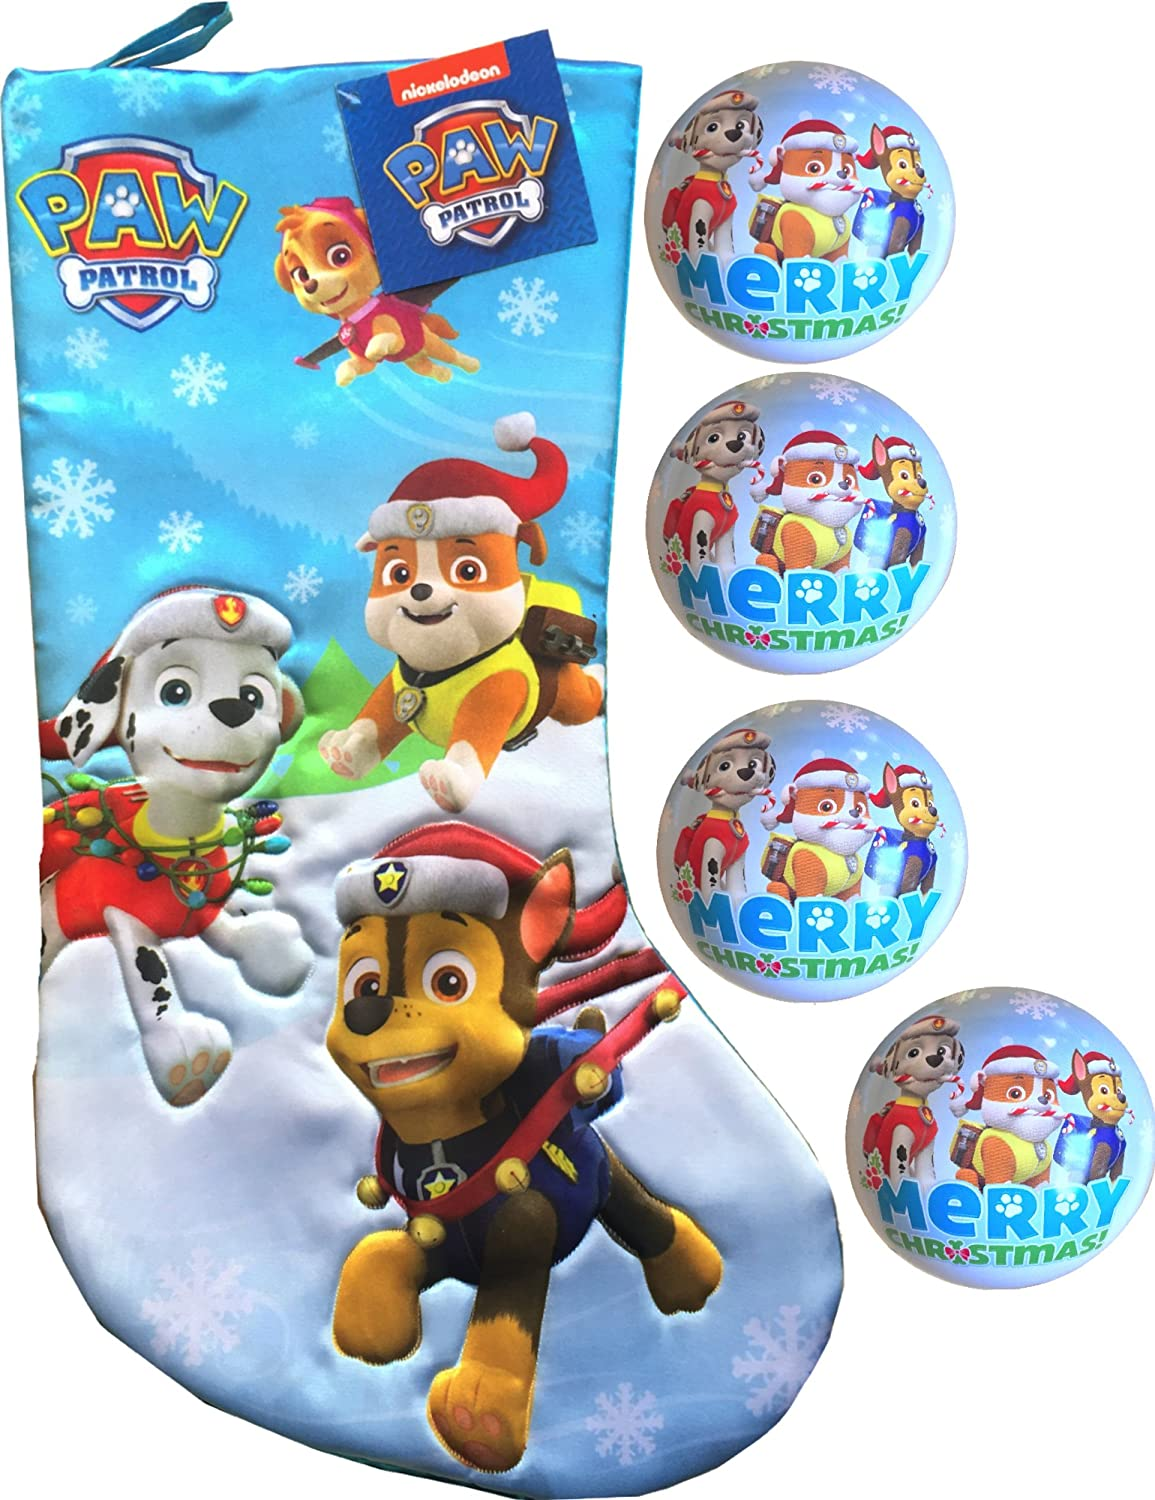 Kids Love These Paw Patrol Christmas Ornaments! - Unique ...